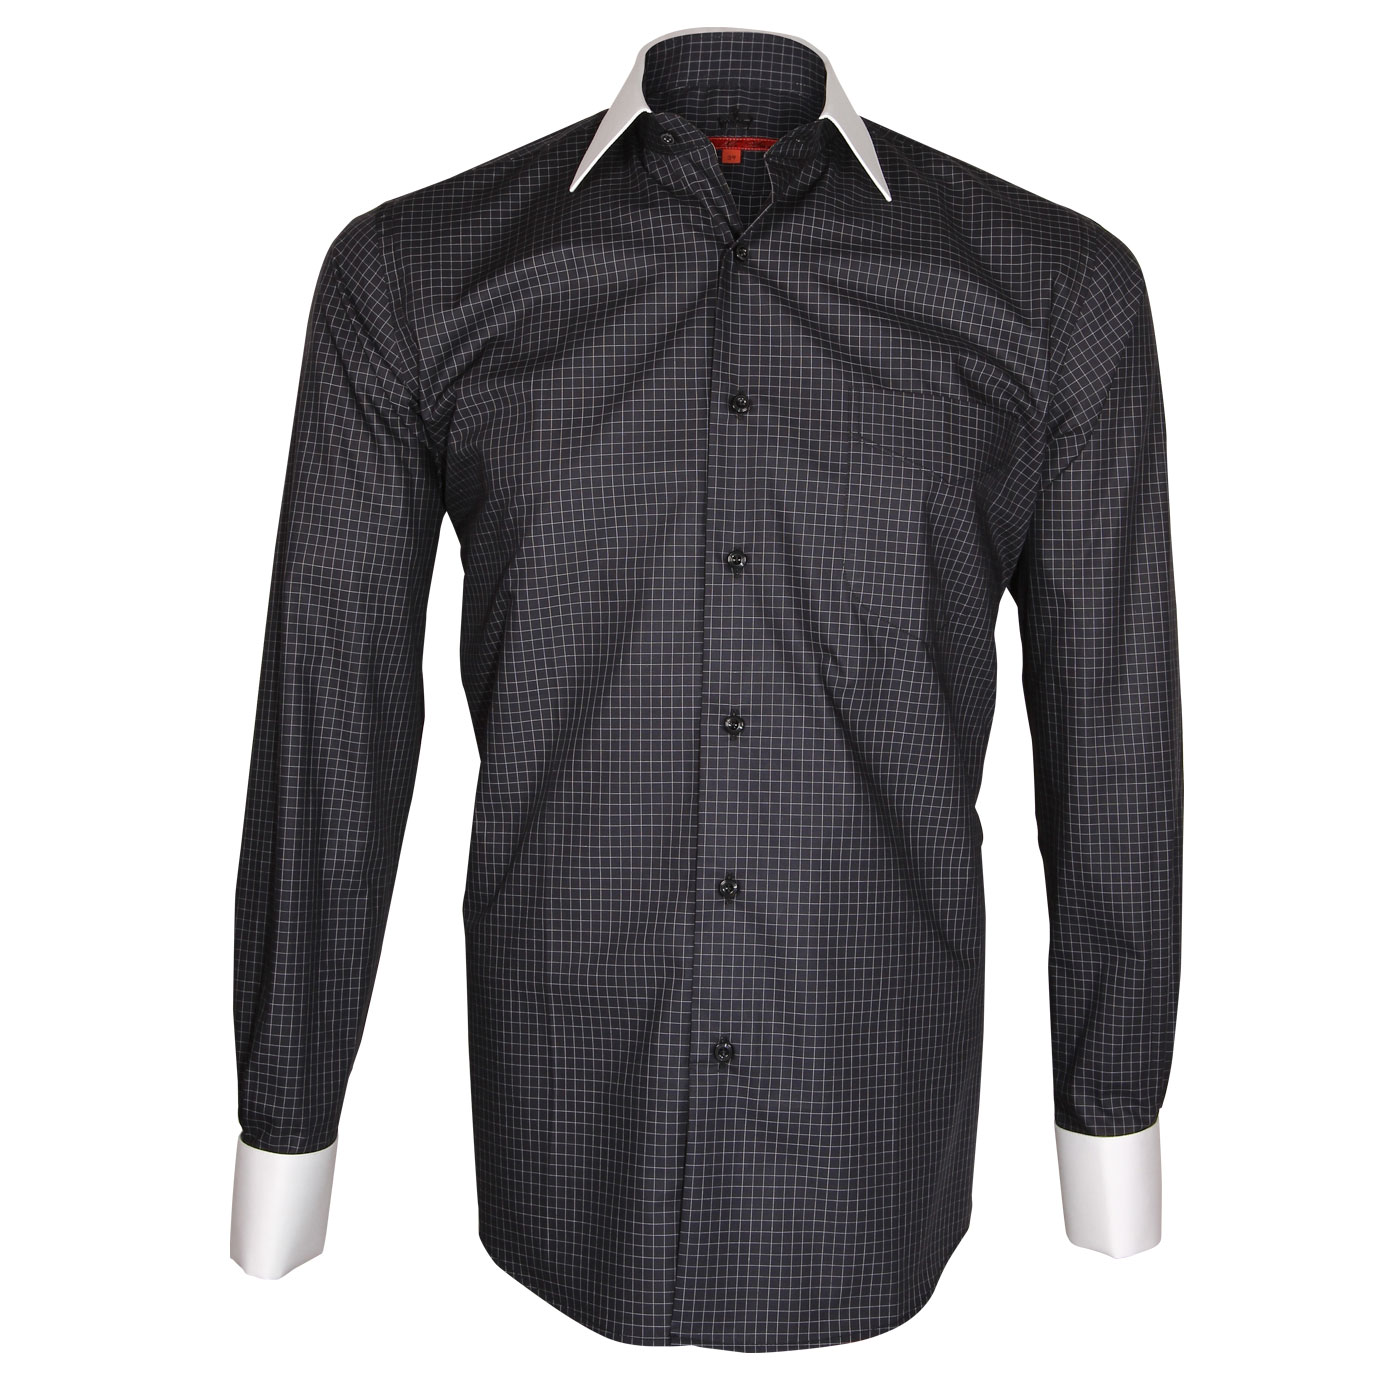 Trendy french cuffs shirt